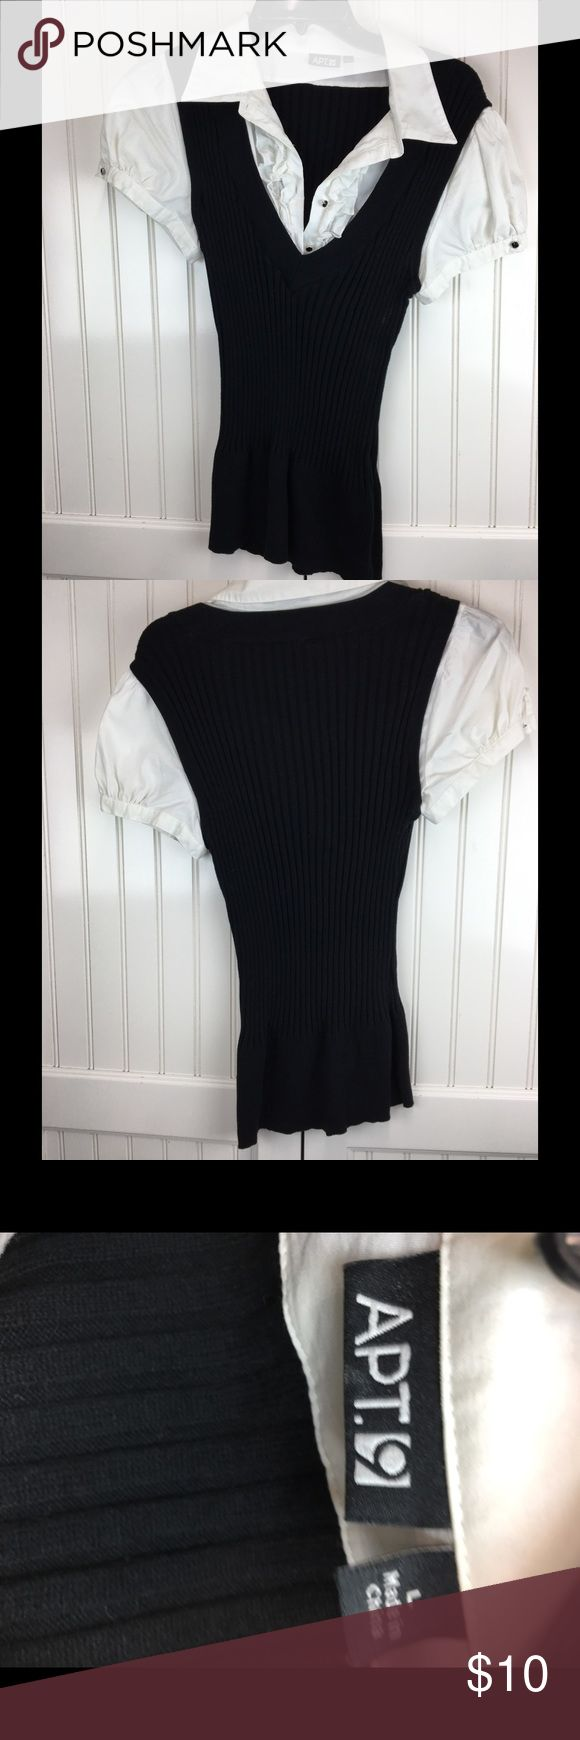 APT. 9 Black and White Top Shirt is in good condition. Apt. 9 Tops Tees - Short Sleeve